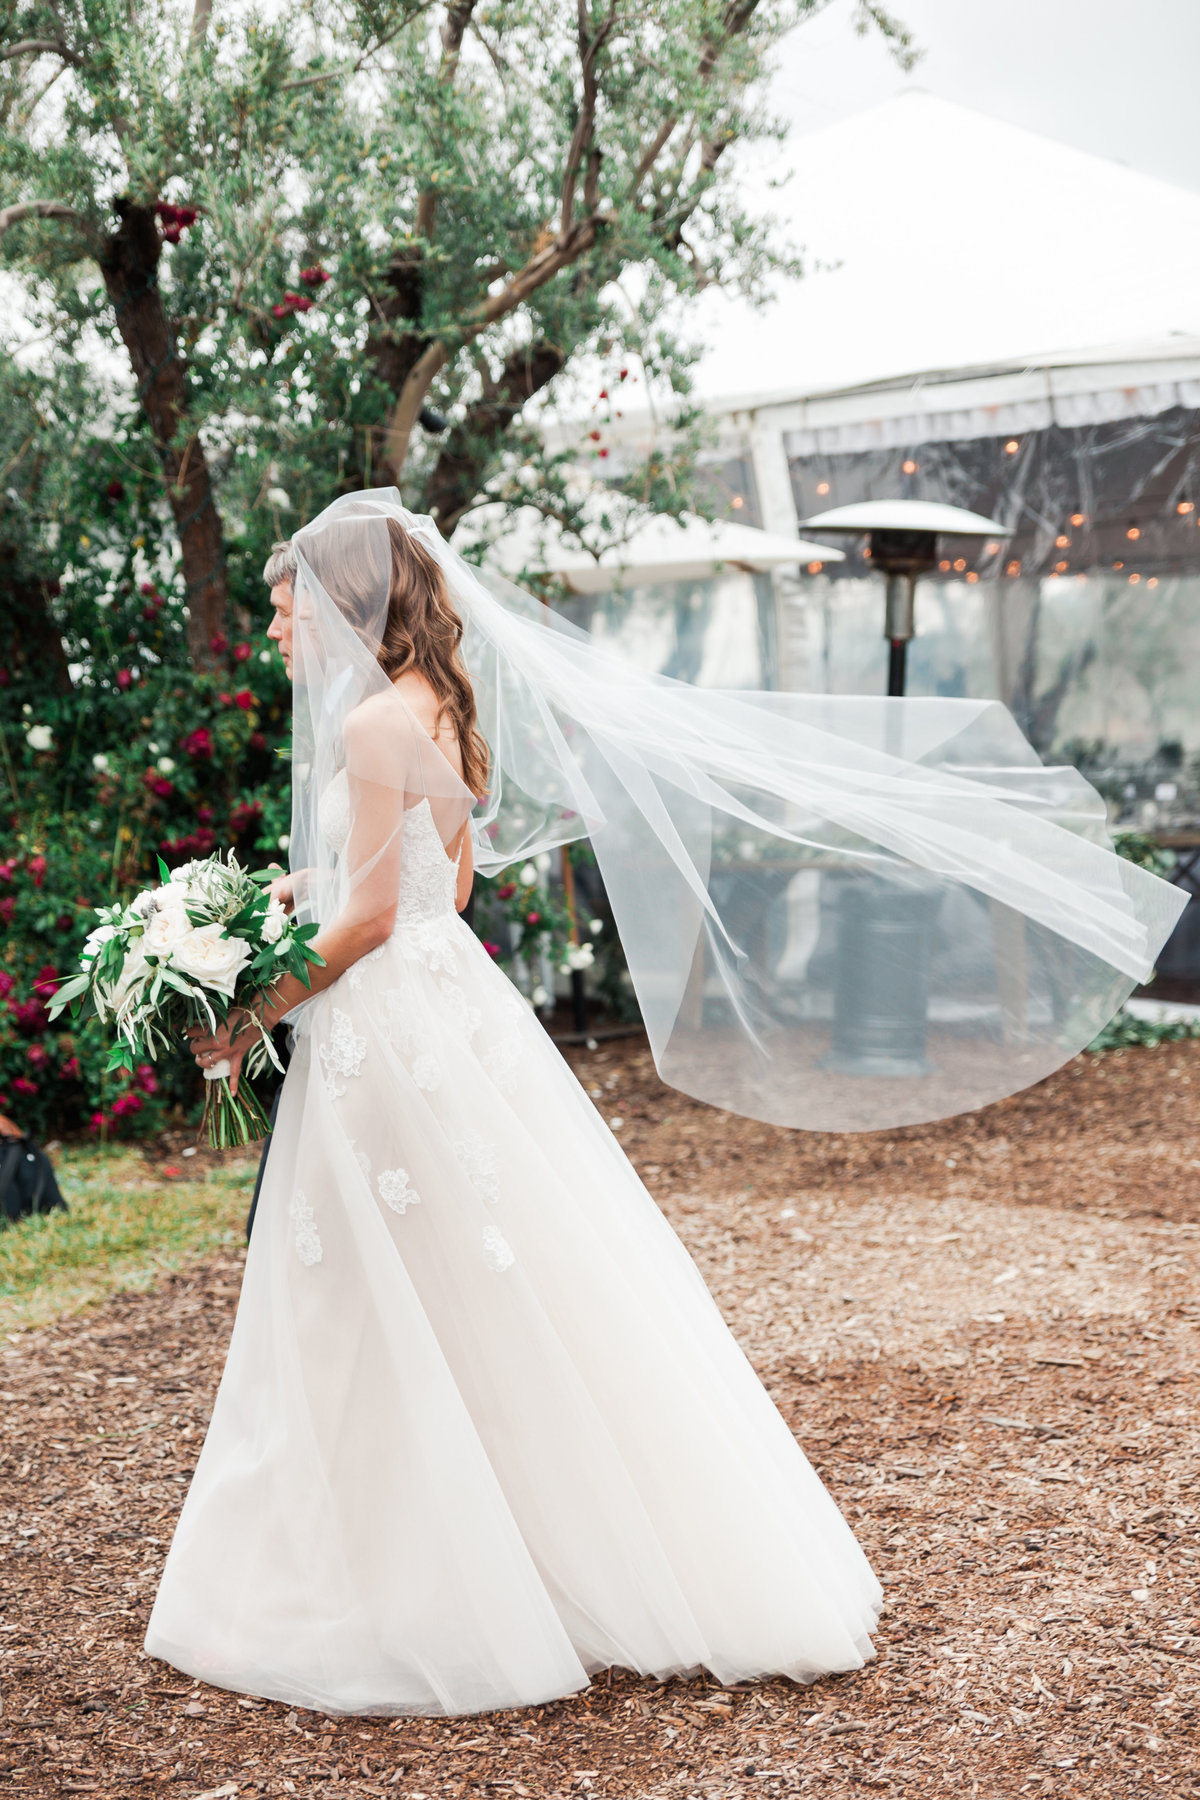 Palihouse_Cielo_Farms_Malibu_Rustic_Wedding_Valorie_Darling_Photography - 77 of 107